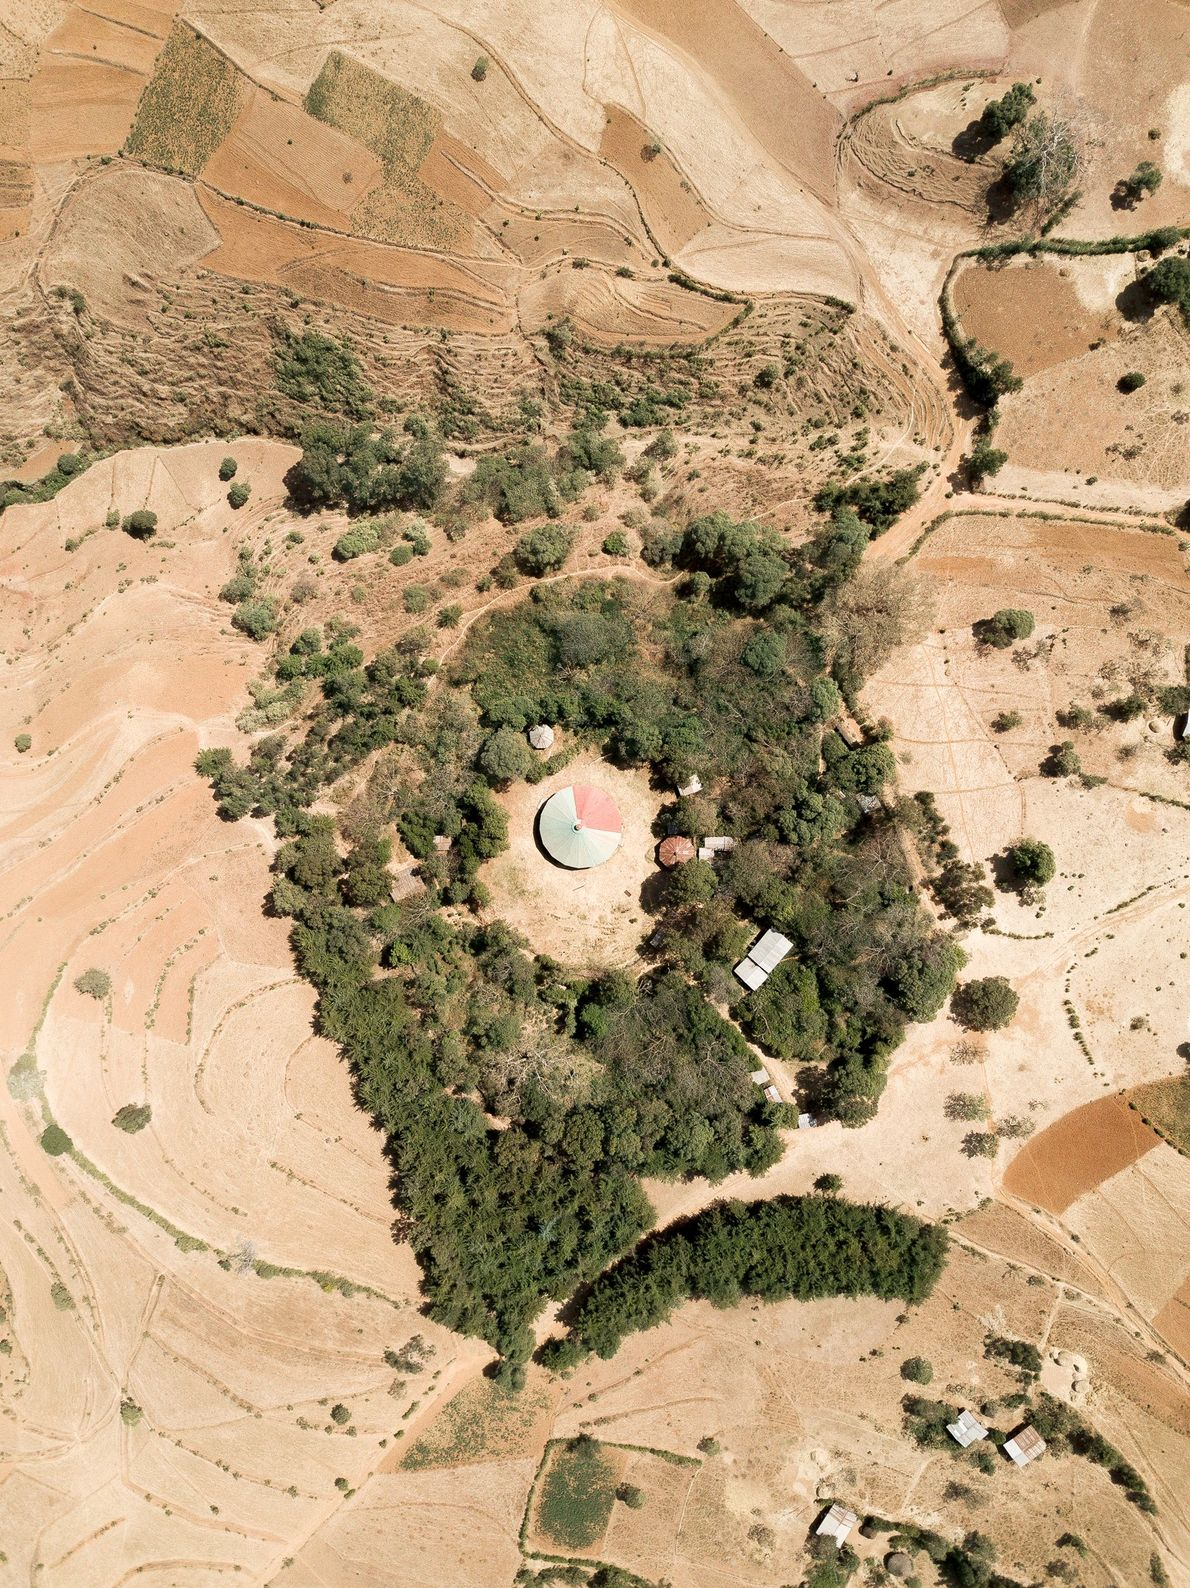 Several auxiliary buildings nestle in the forest alongside the Tebebari Michael church in Anbesame, Amhara.